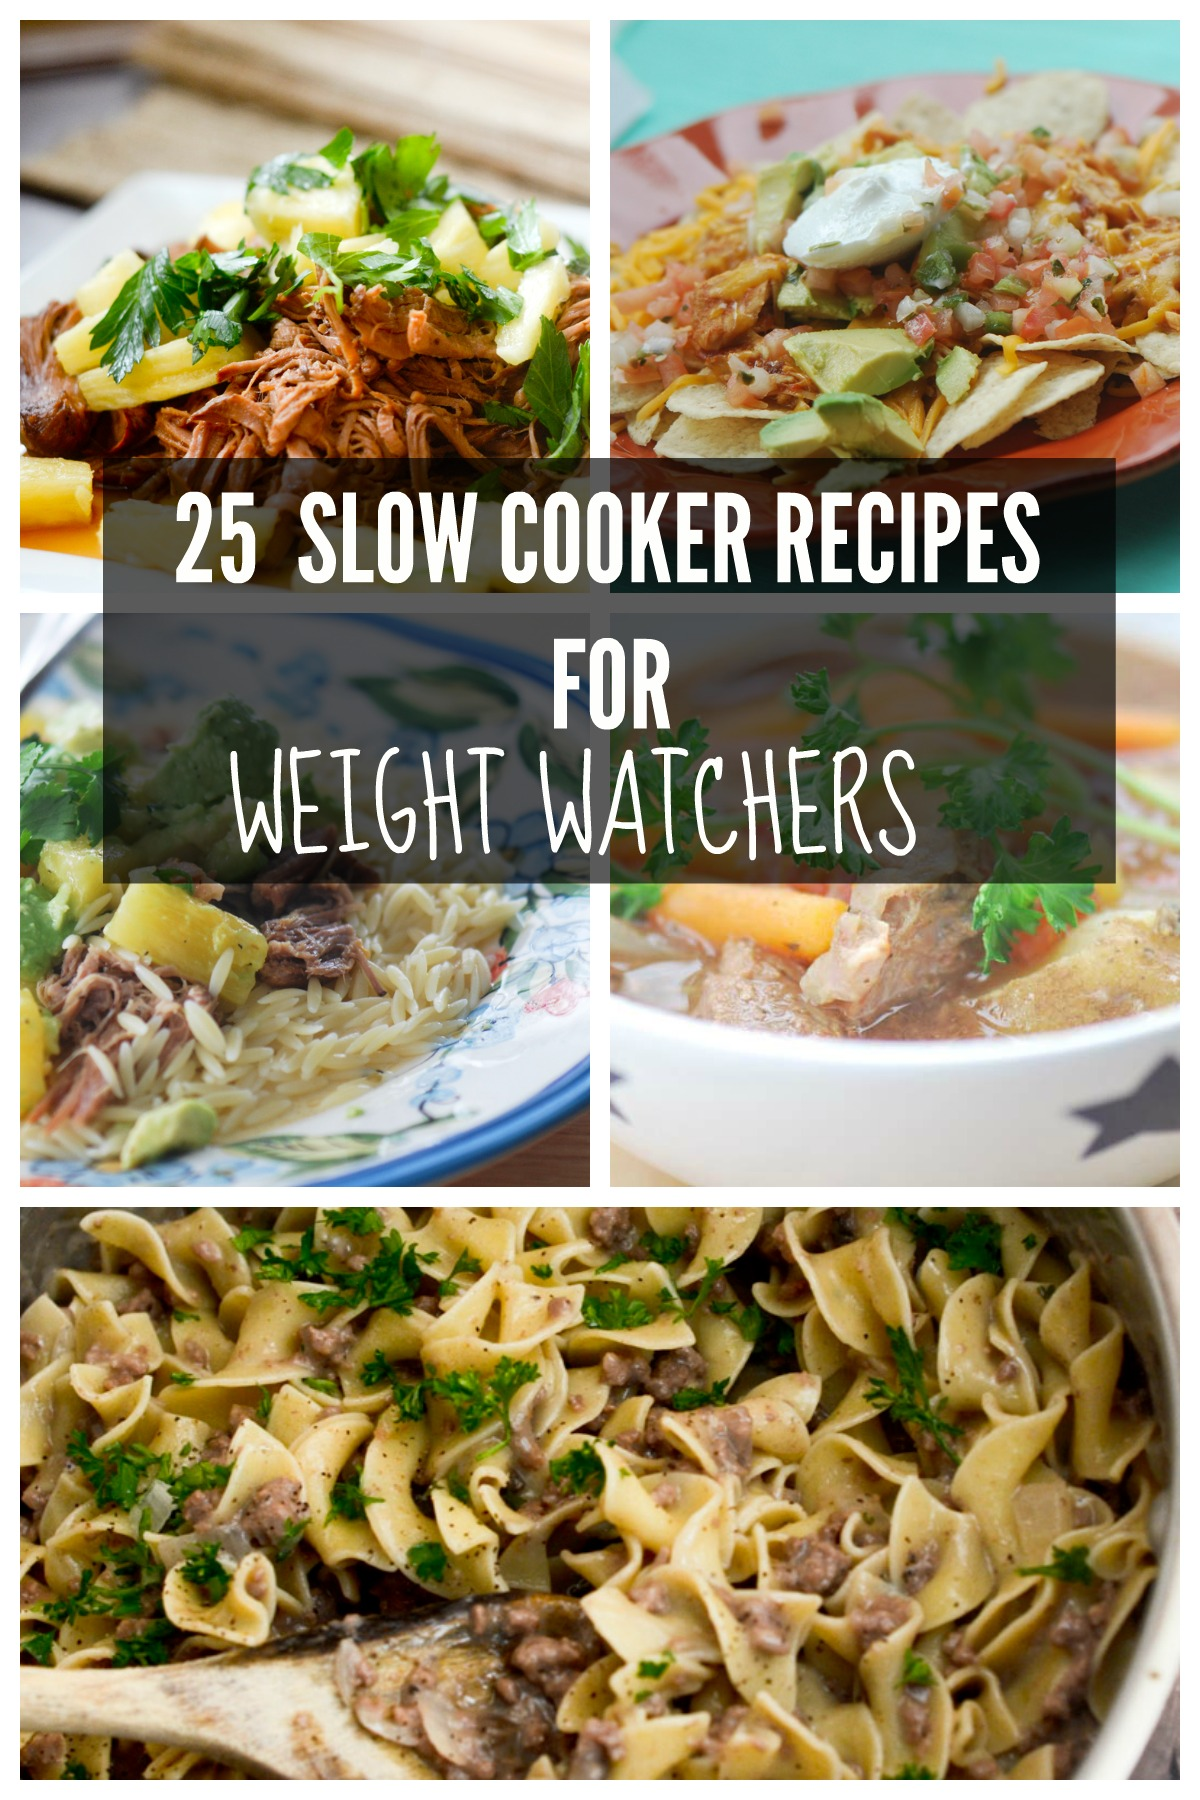 25 Slow Cooker Recipes for Weight Watcher's